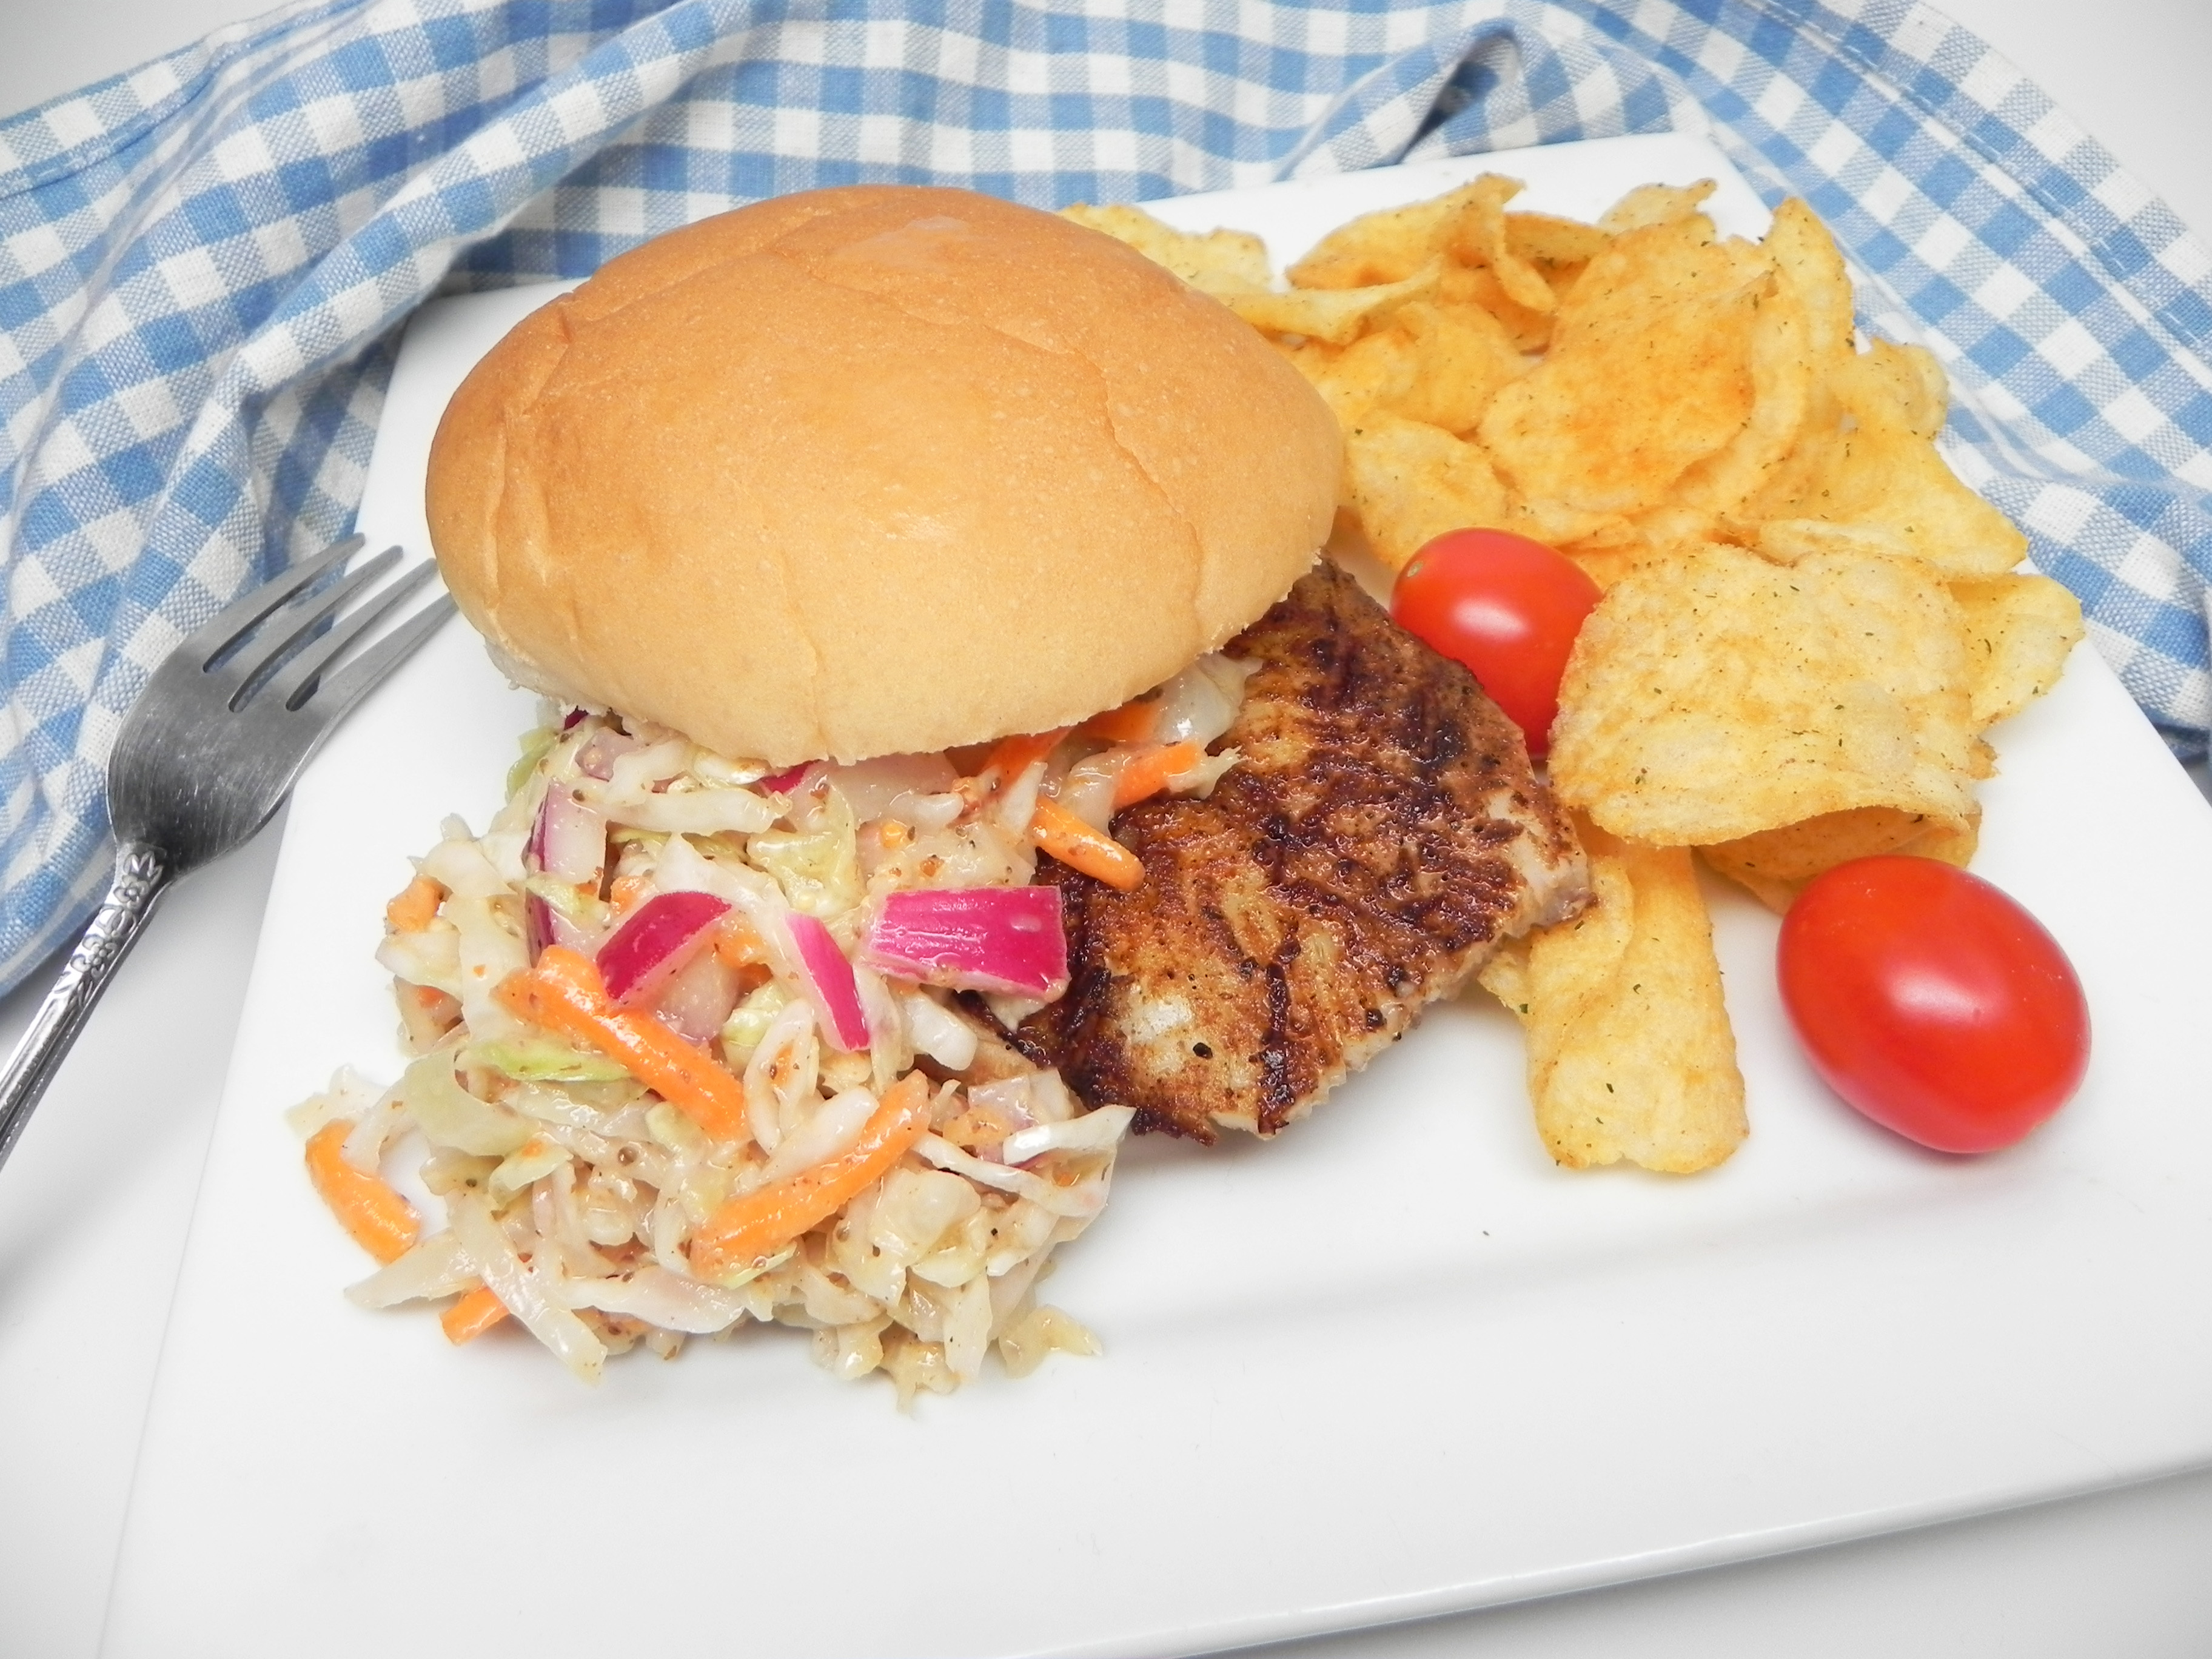 Grilled Blackened Fish Sandwiches with Homemade Slaw